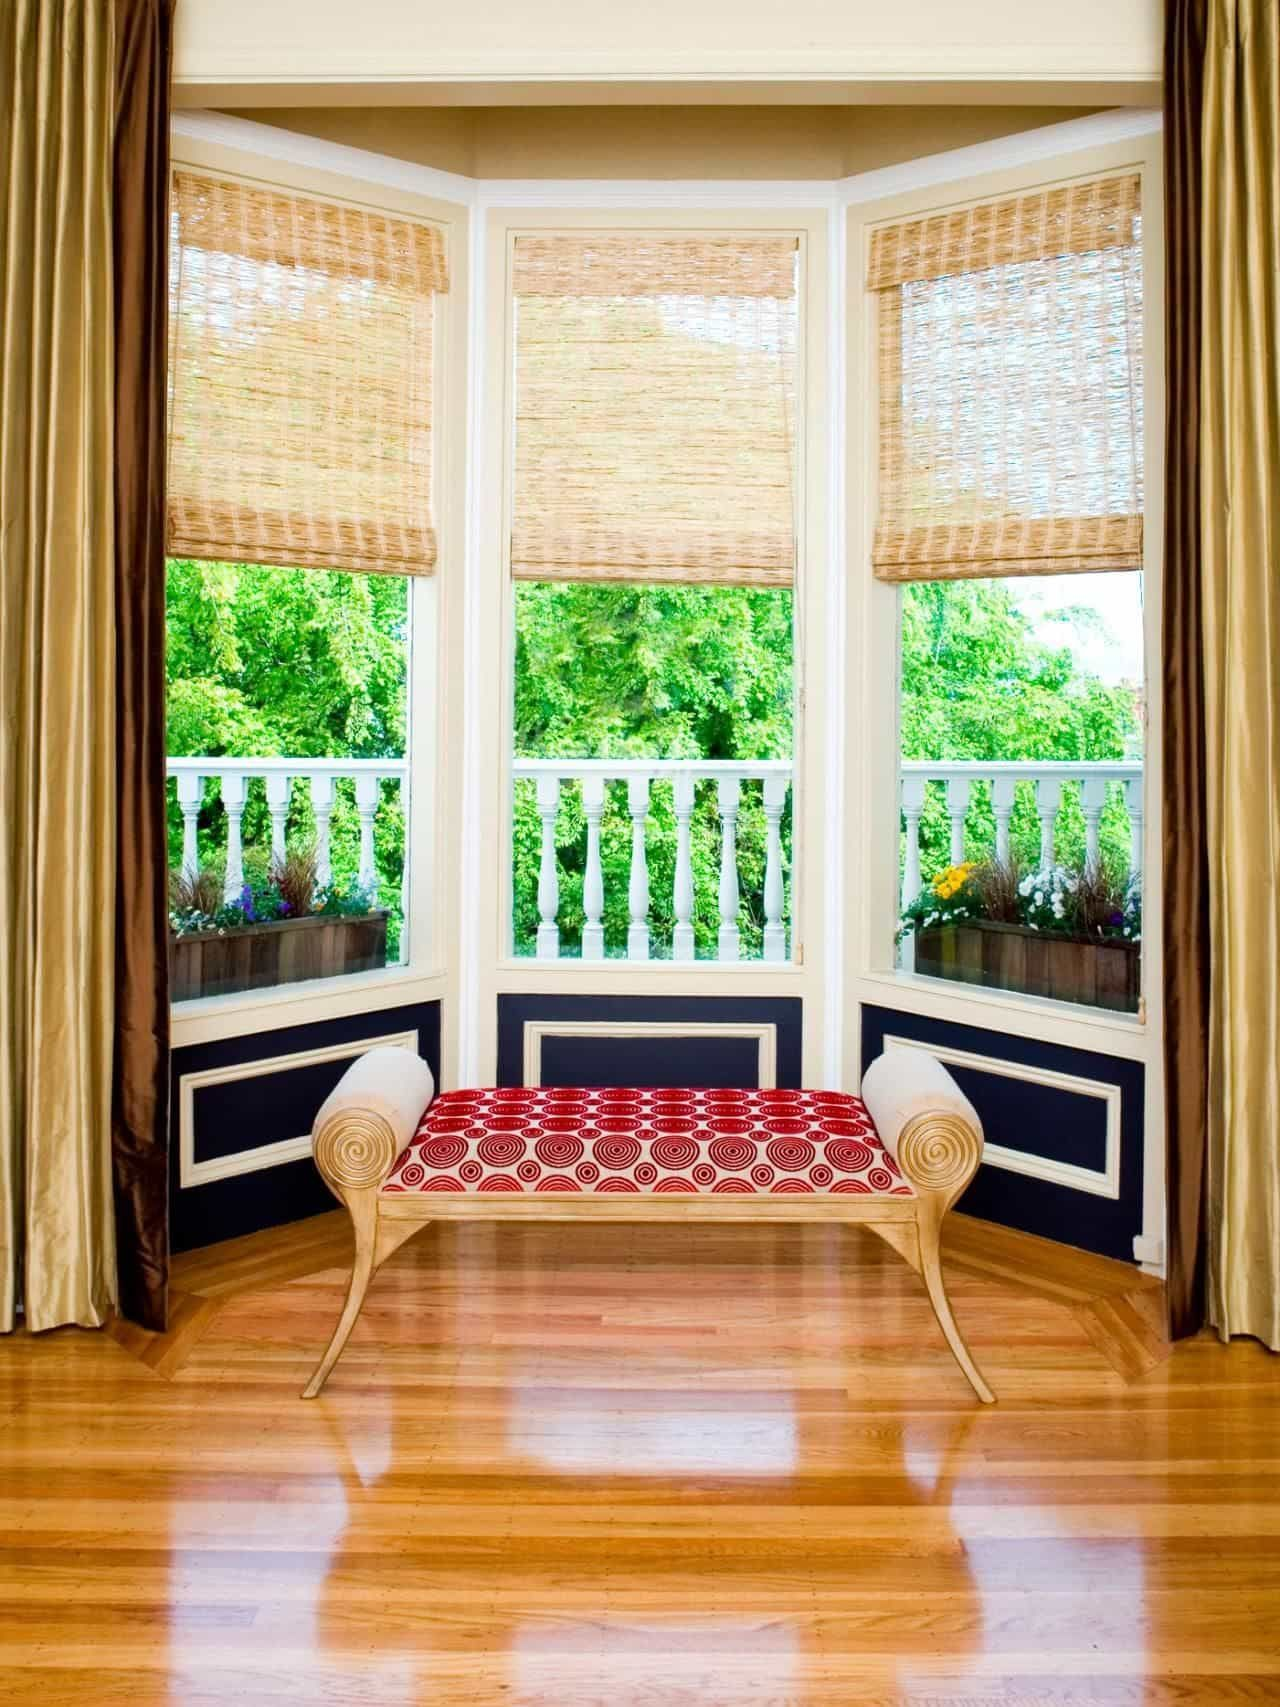 Fenstergestaltung Nice Bay Window Decorating Tips | Esszimmer Vertäfelung, Fenster Dekor, Fenstergestaltung